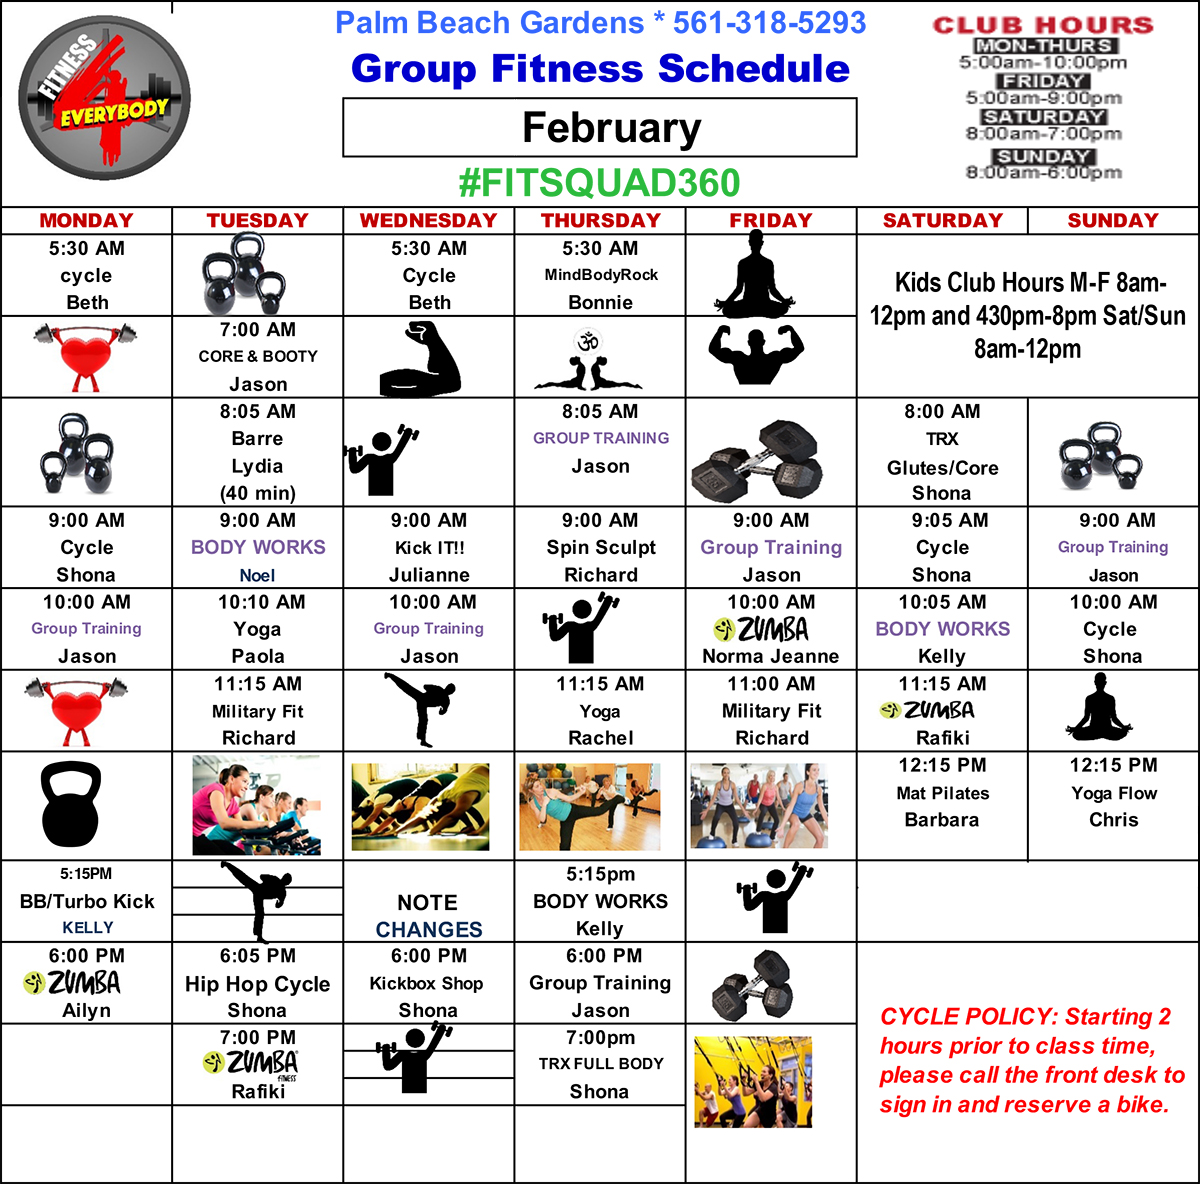 Fitness 4 Everybody Group Fitness Class Schedule for February 2020